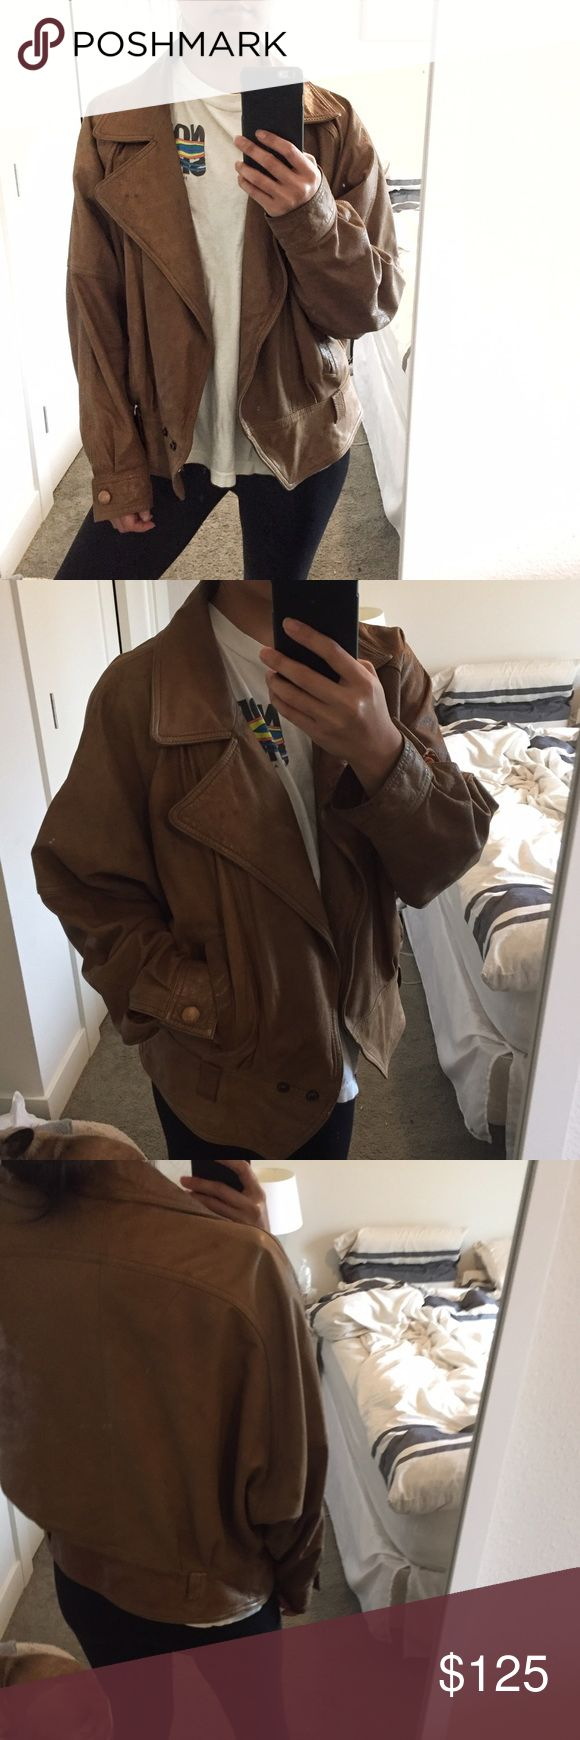 """Sale! Vintage Winlit Leather Moto Jacket Super rad one of a kind leather jacket with a motorcycle feel to it w/ large collar and slight bat winged arms. In love with this, it's soft leather not stiff like some vintage leather. I'm a size S and 5'4"""" for reference. Could fit a M-L as well depending on desired fit. Has some normal signs of wear from over the years, mostly some discoloration marks shown in photos - on the back very faint scratches in upper right pic - hard to see. Adds to the…"""